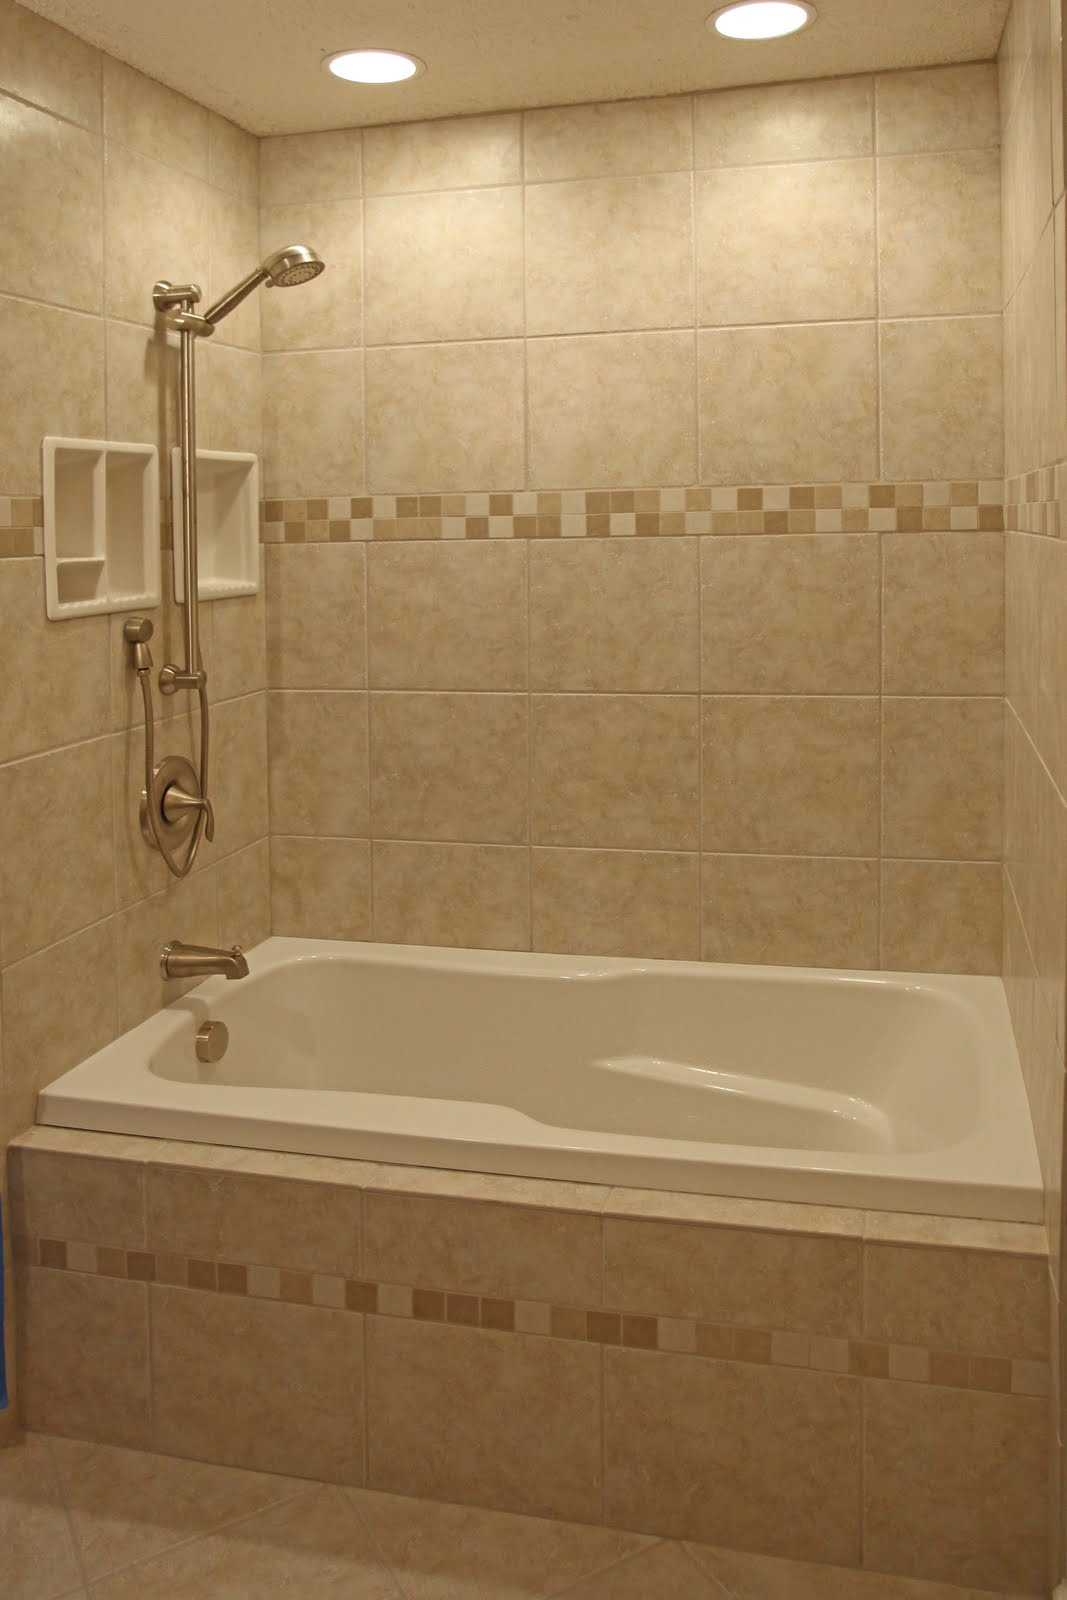 Bathroom remodeling design ideas tile shower niches for Small bathroom design ideas with tub